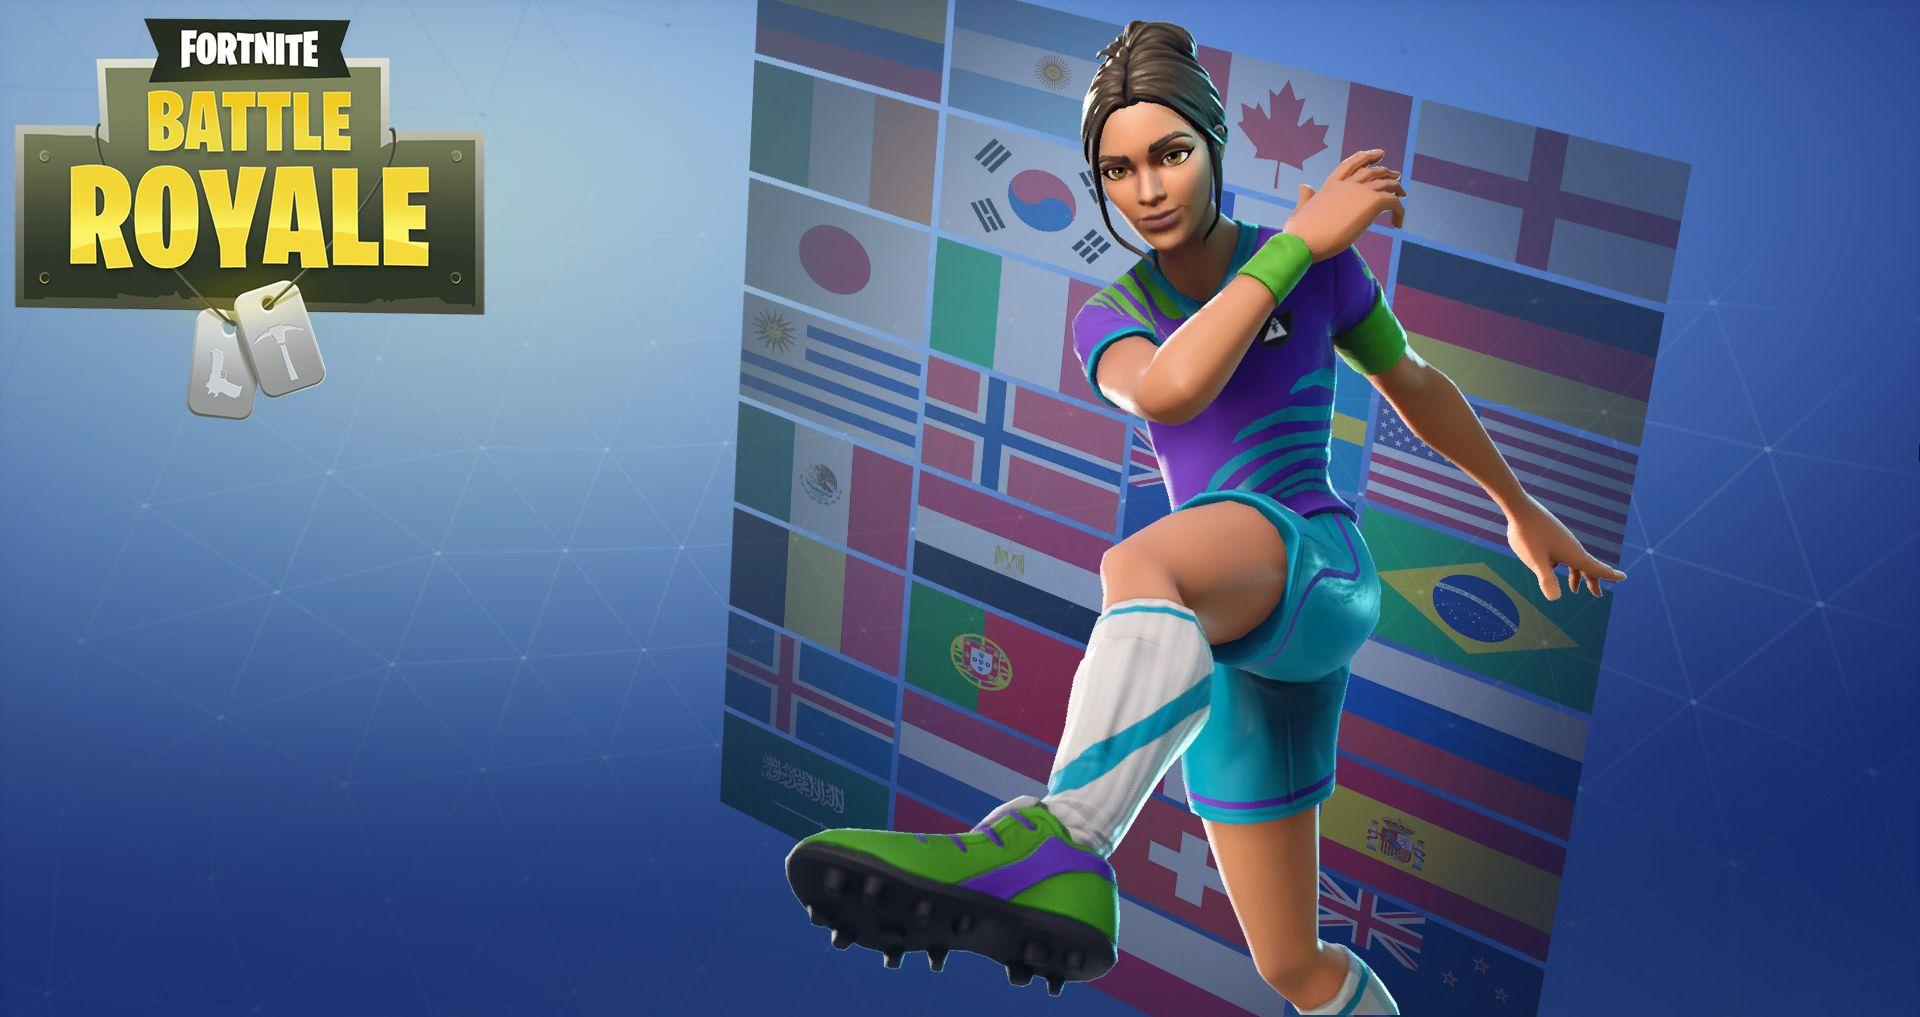 Poised Playmaker Fortnite Outfit Skin How to Get, News